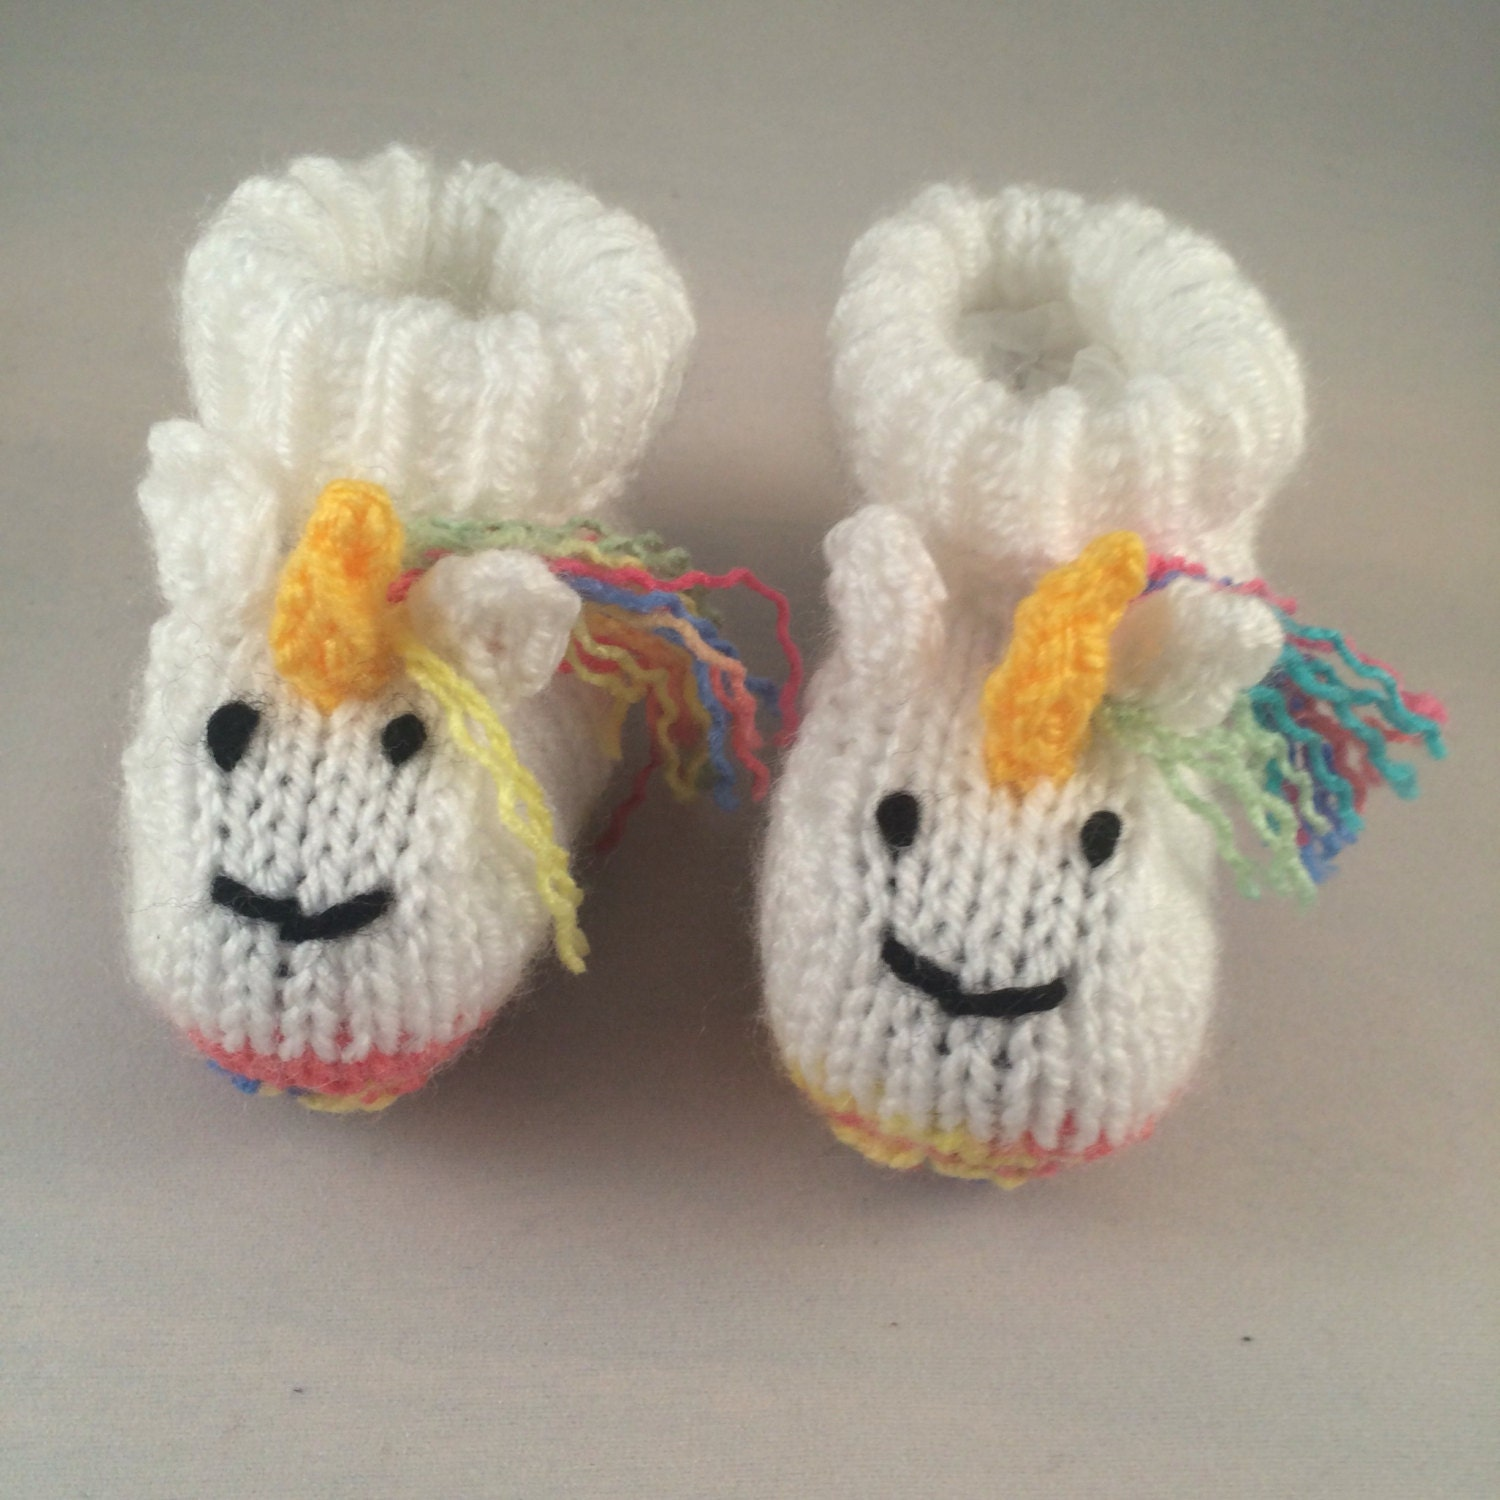 Unicorn baby booties rainbow baby gift boots knitted shoes baby girl baby boy baby shower cute